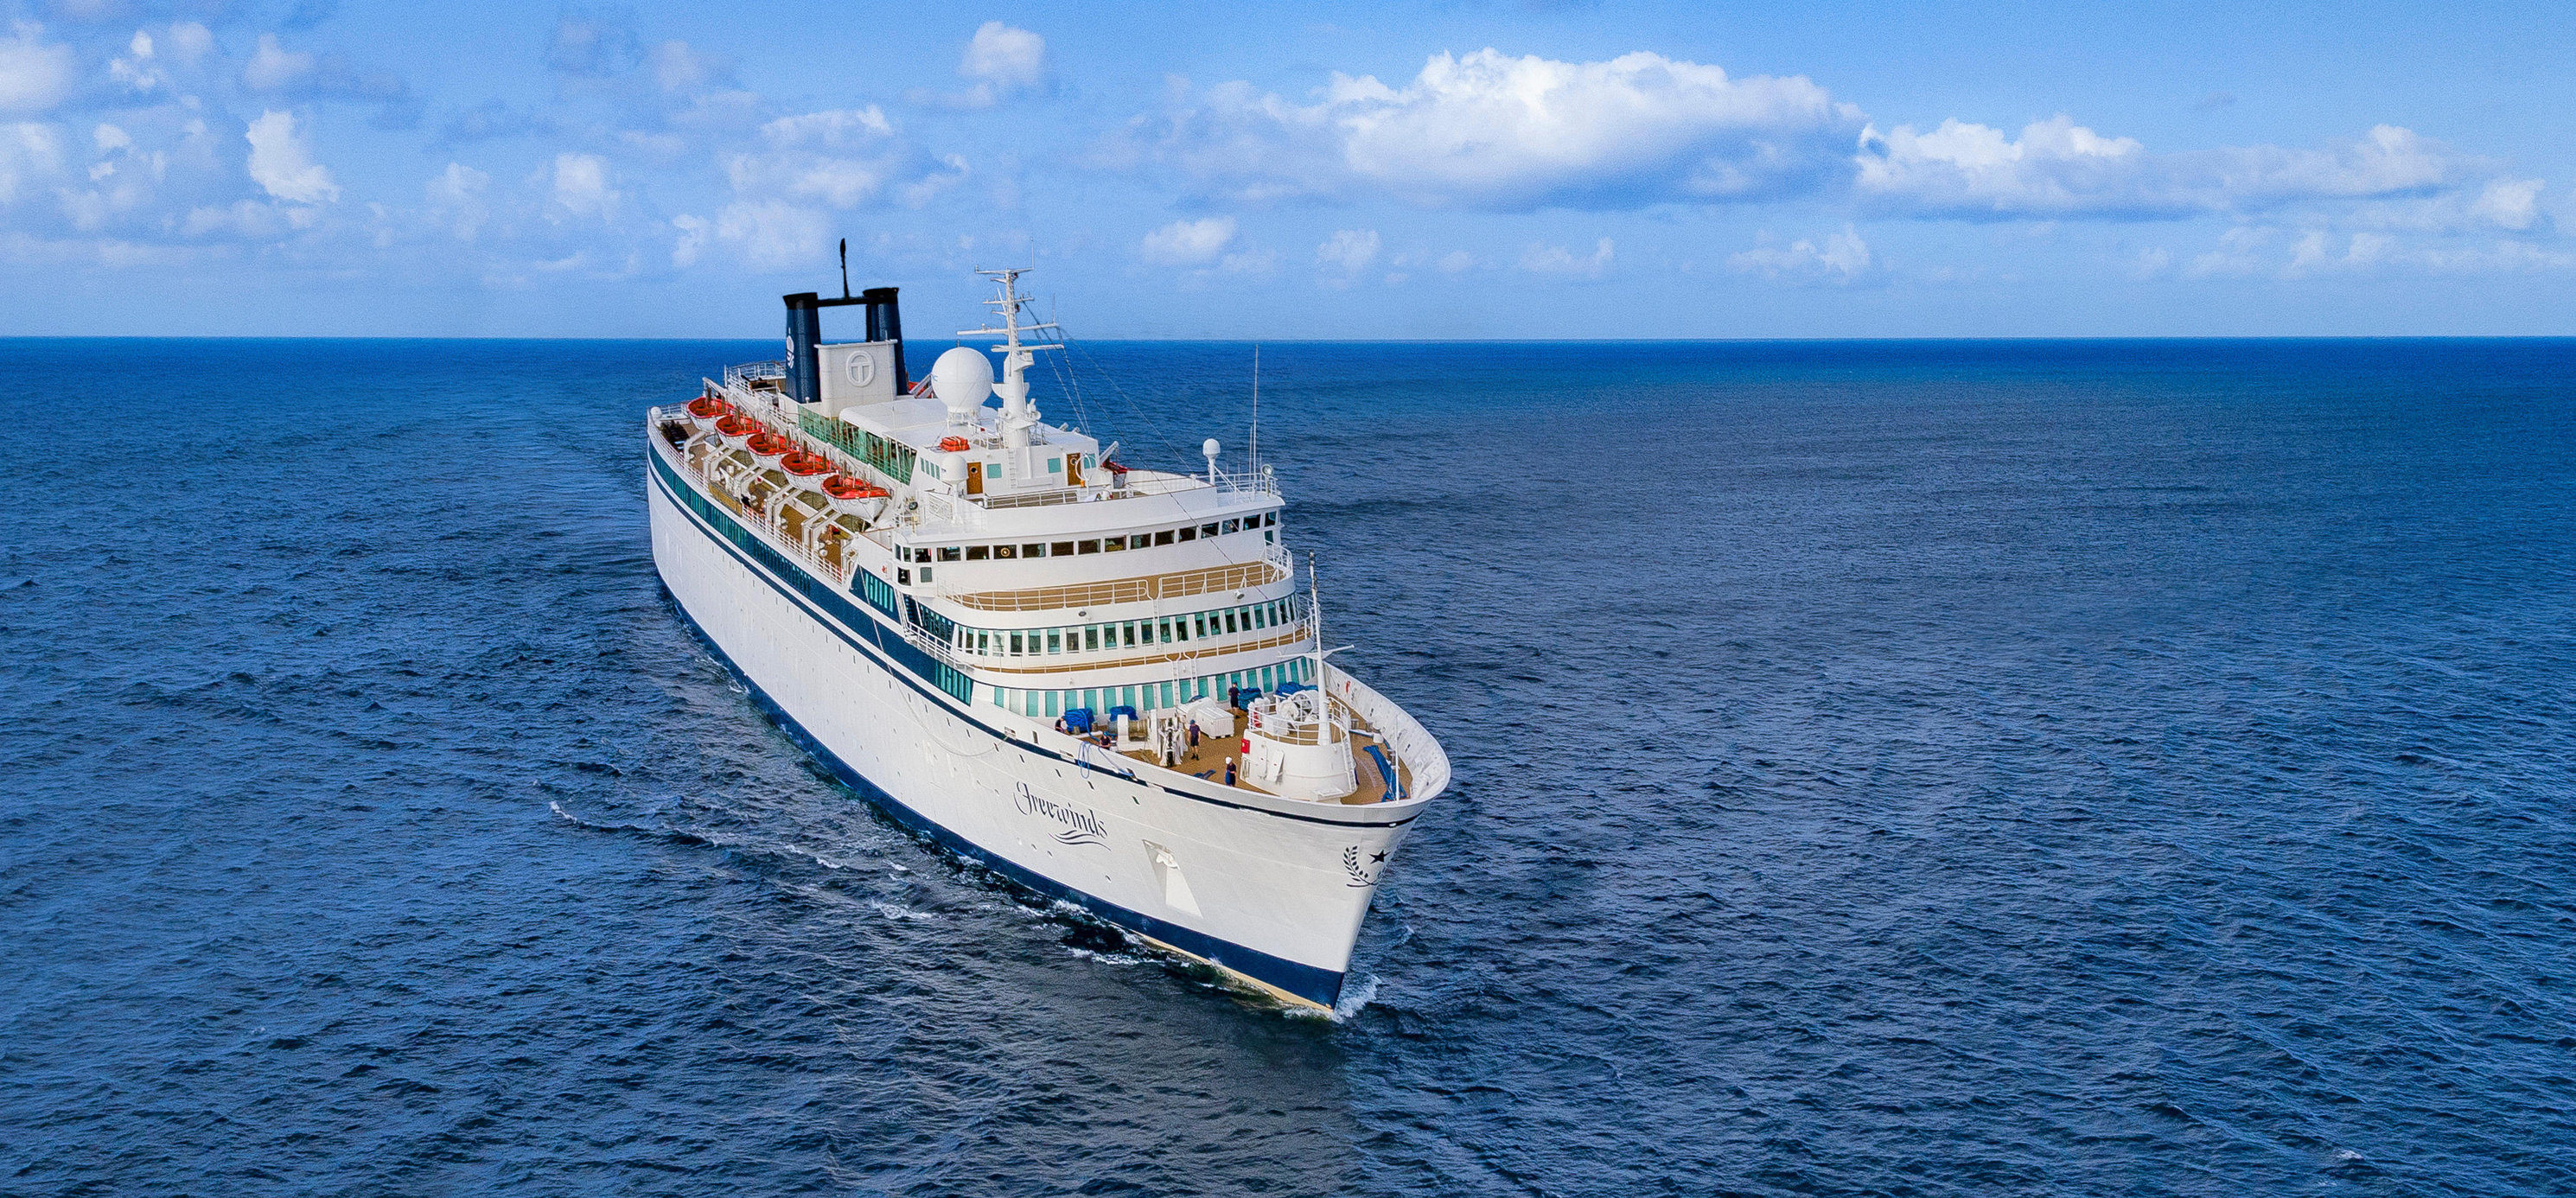 Infinite Possibility The Freewinds 31st Maiden Voyage